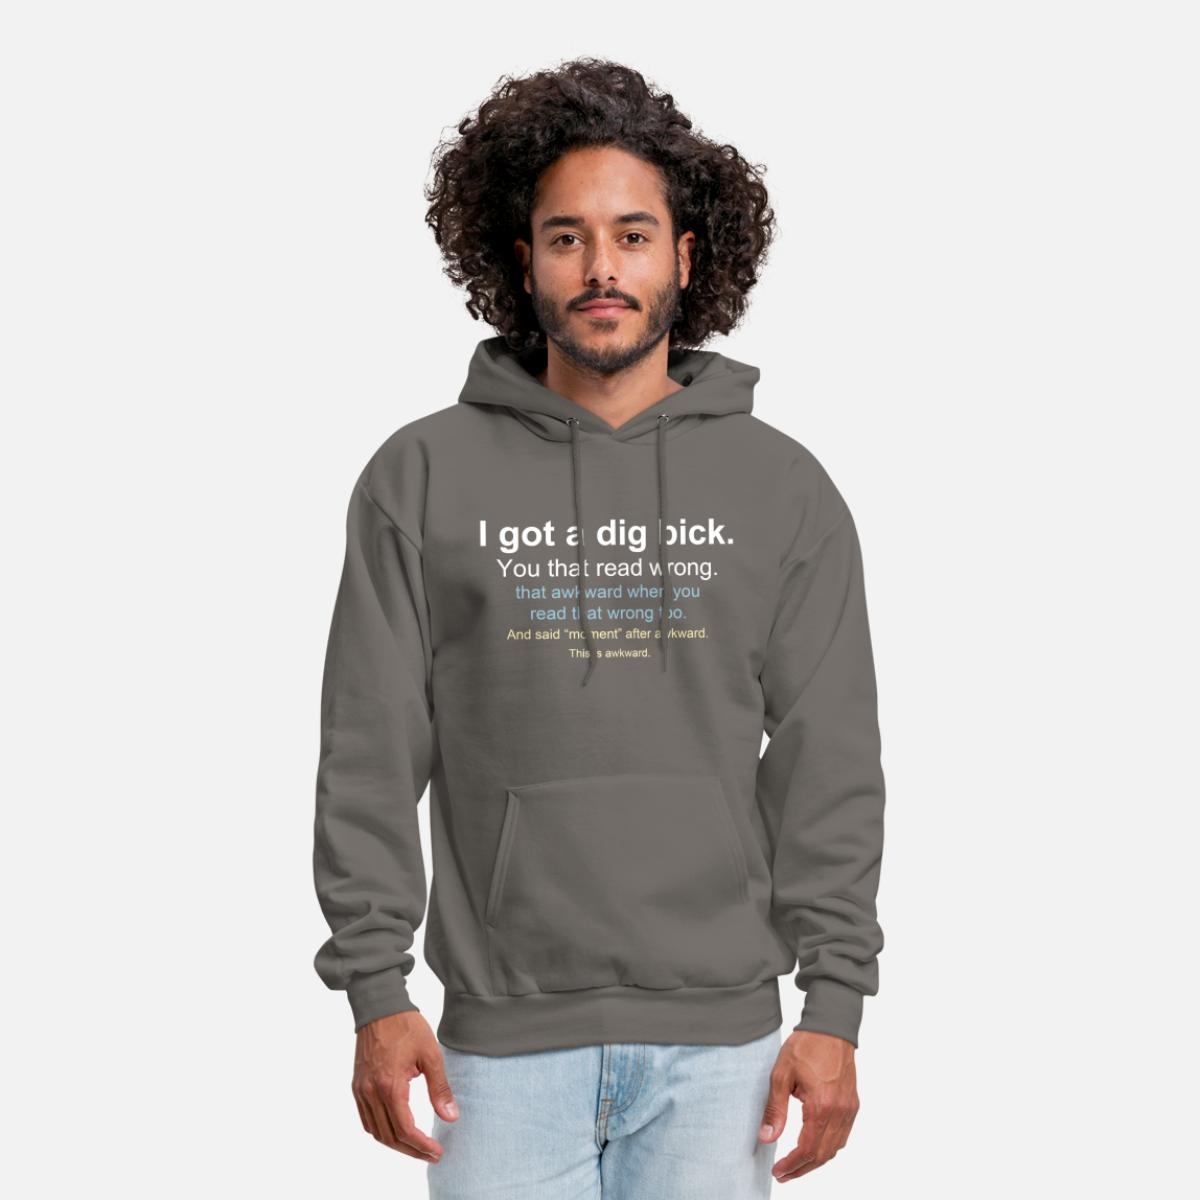 You That Read Wrong You Read That Wrong Too Hoodies Sweatshirt for Men Pullover Classic with Pockets S Black